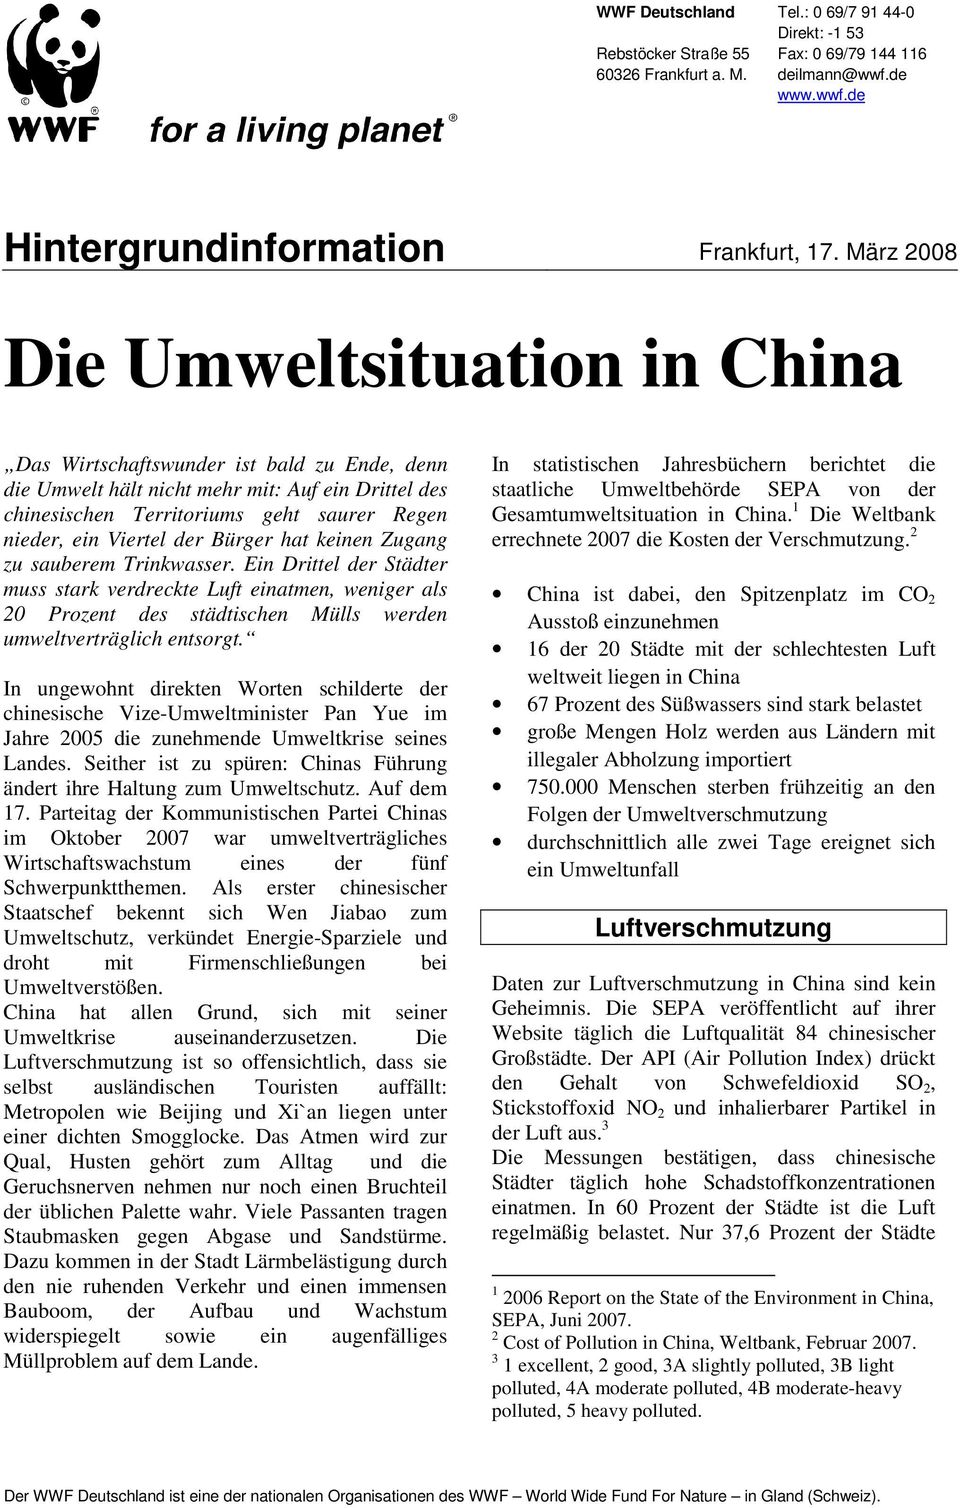 Die Umweltsituation in China - PDF